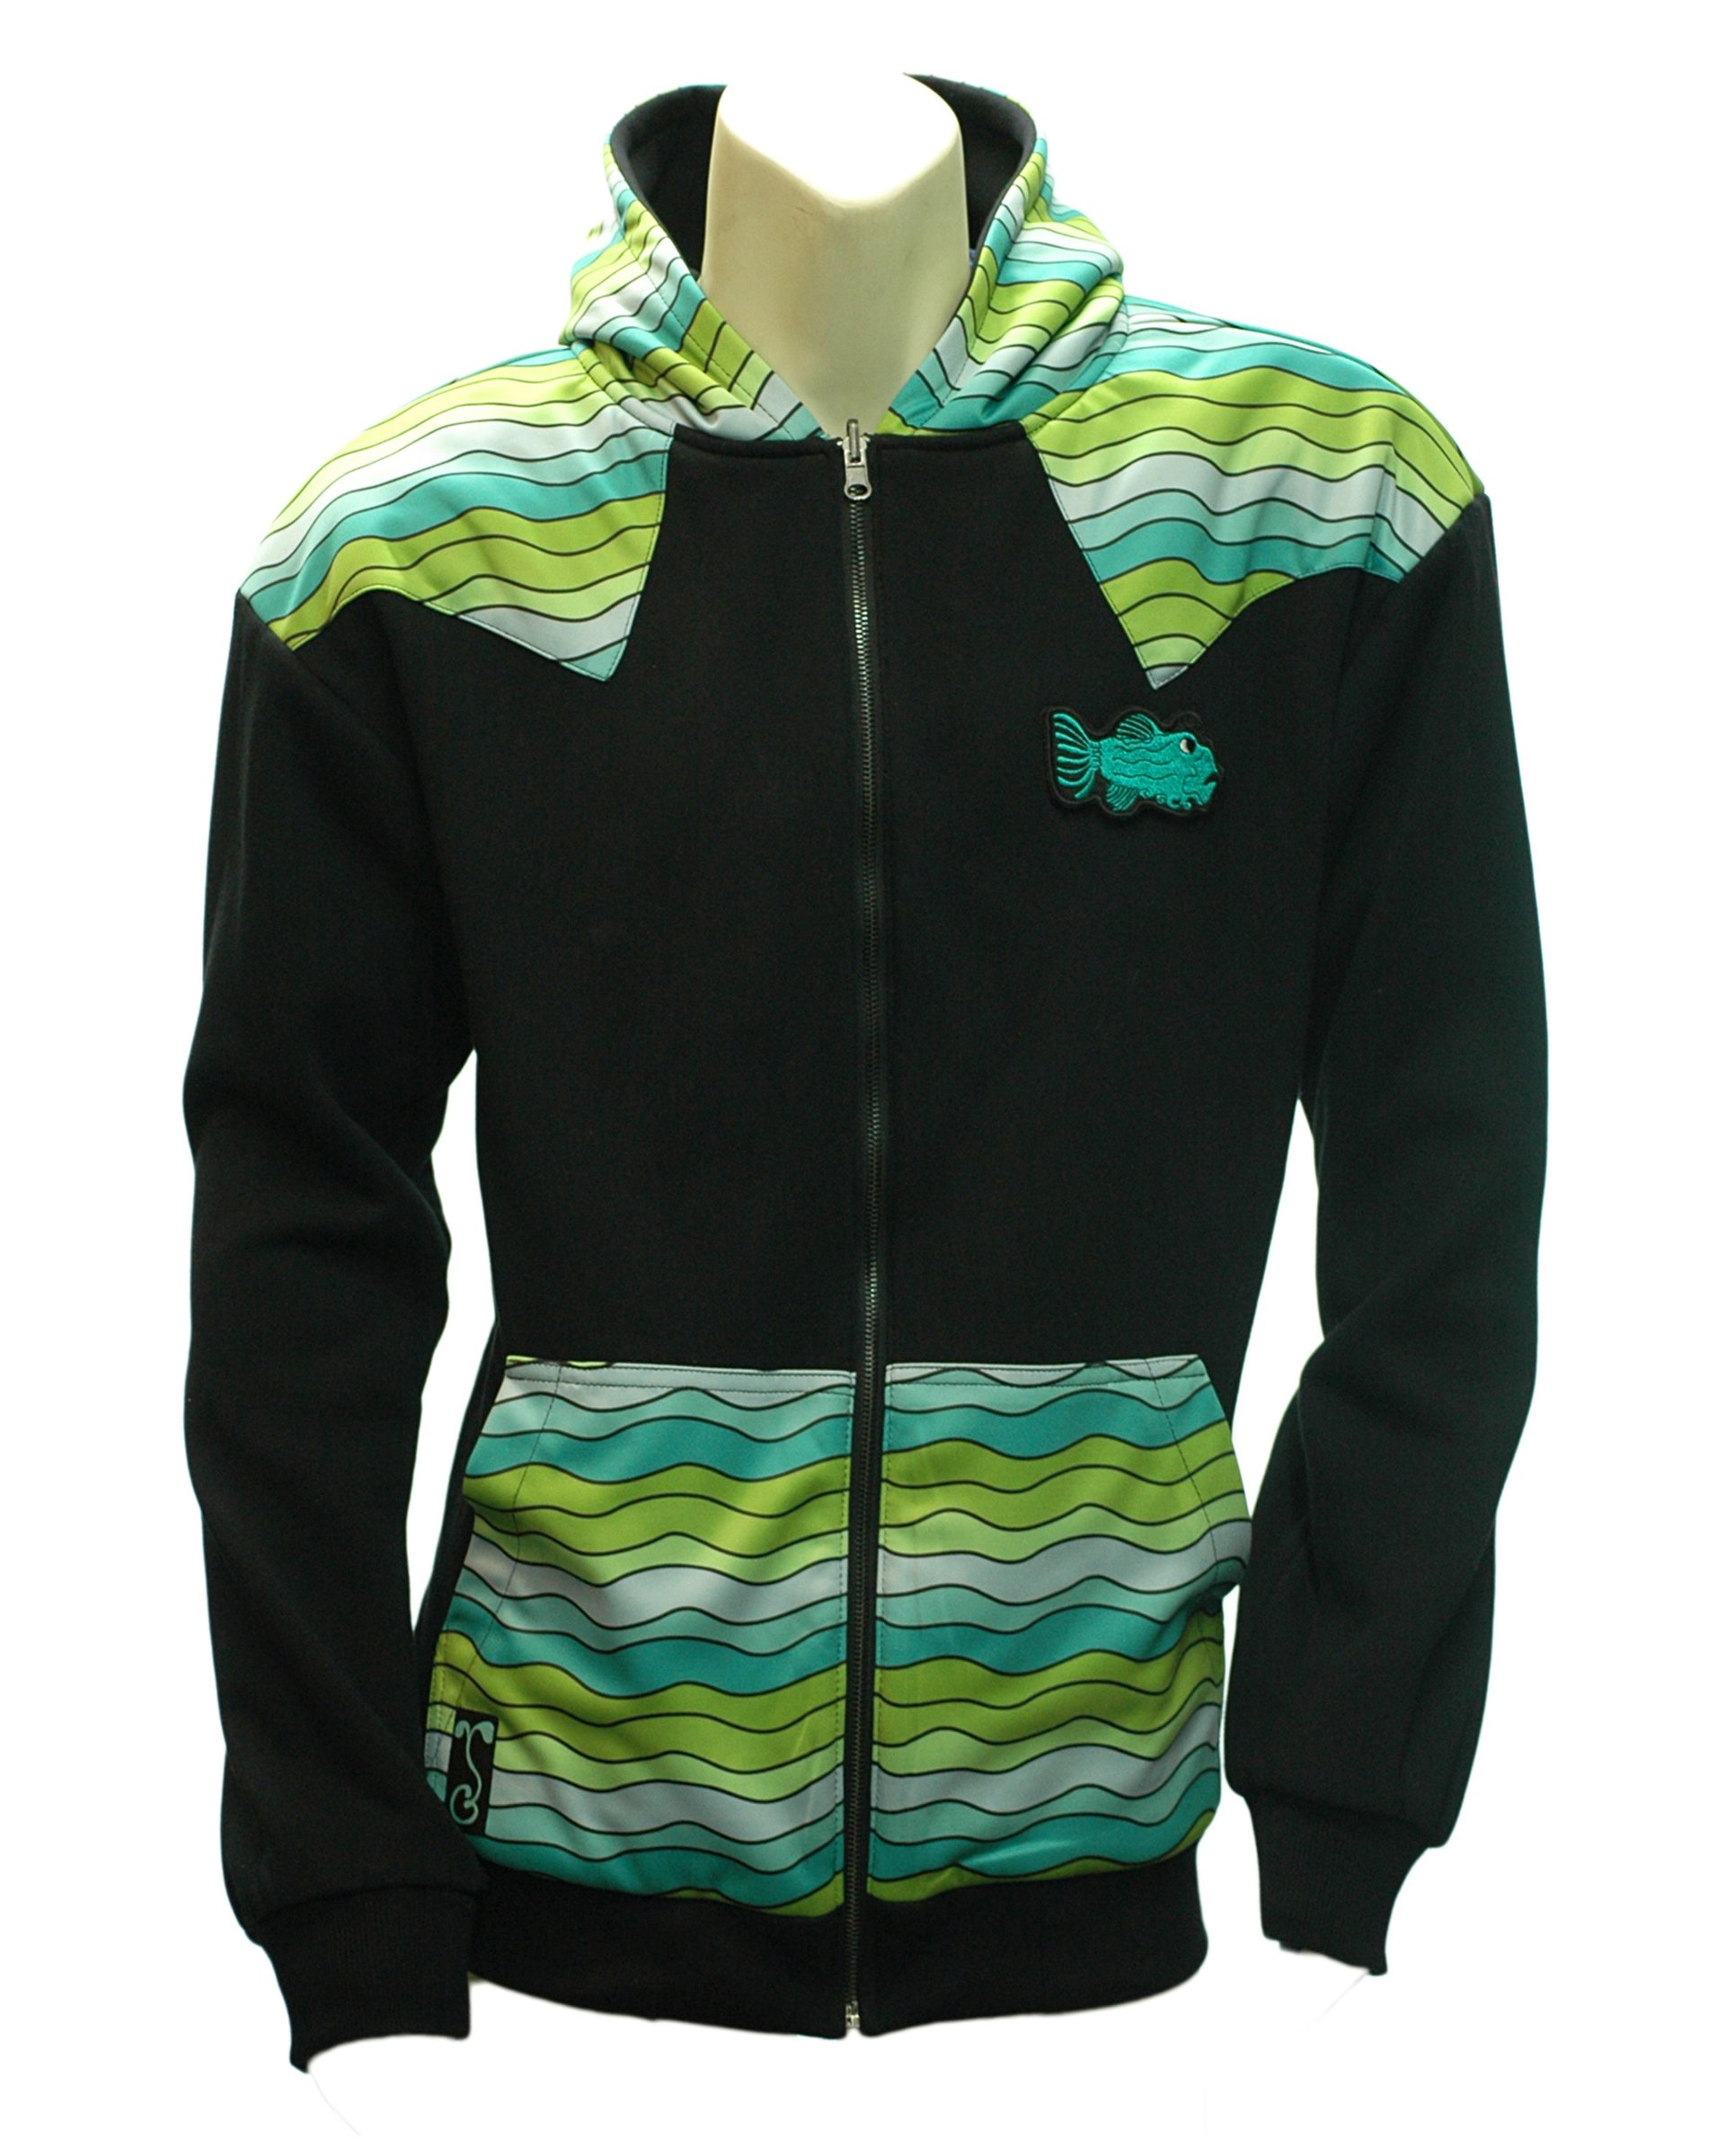 Reversible Jerry Garcia Removable Fish Waves Zip-up Hoodie (Outside-Front)